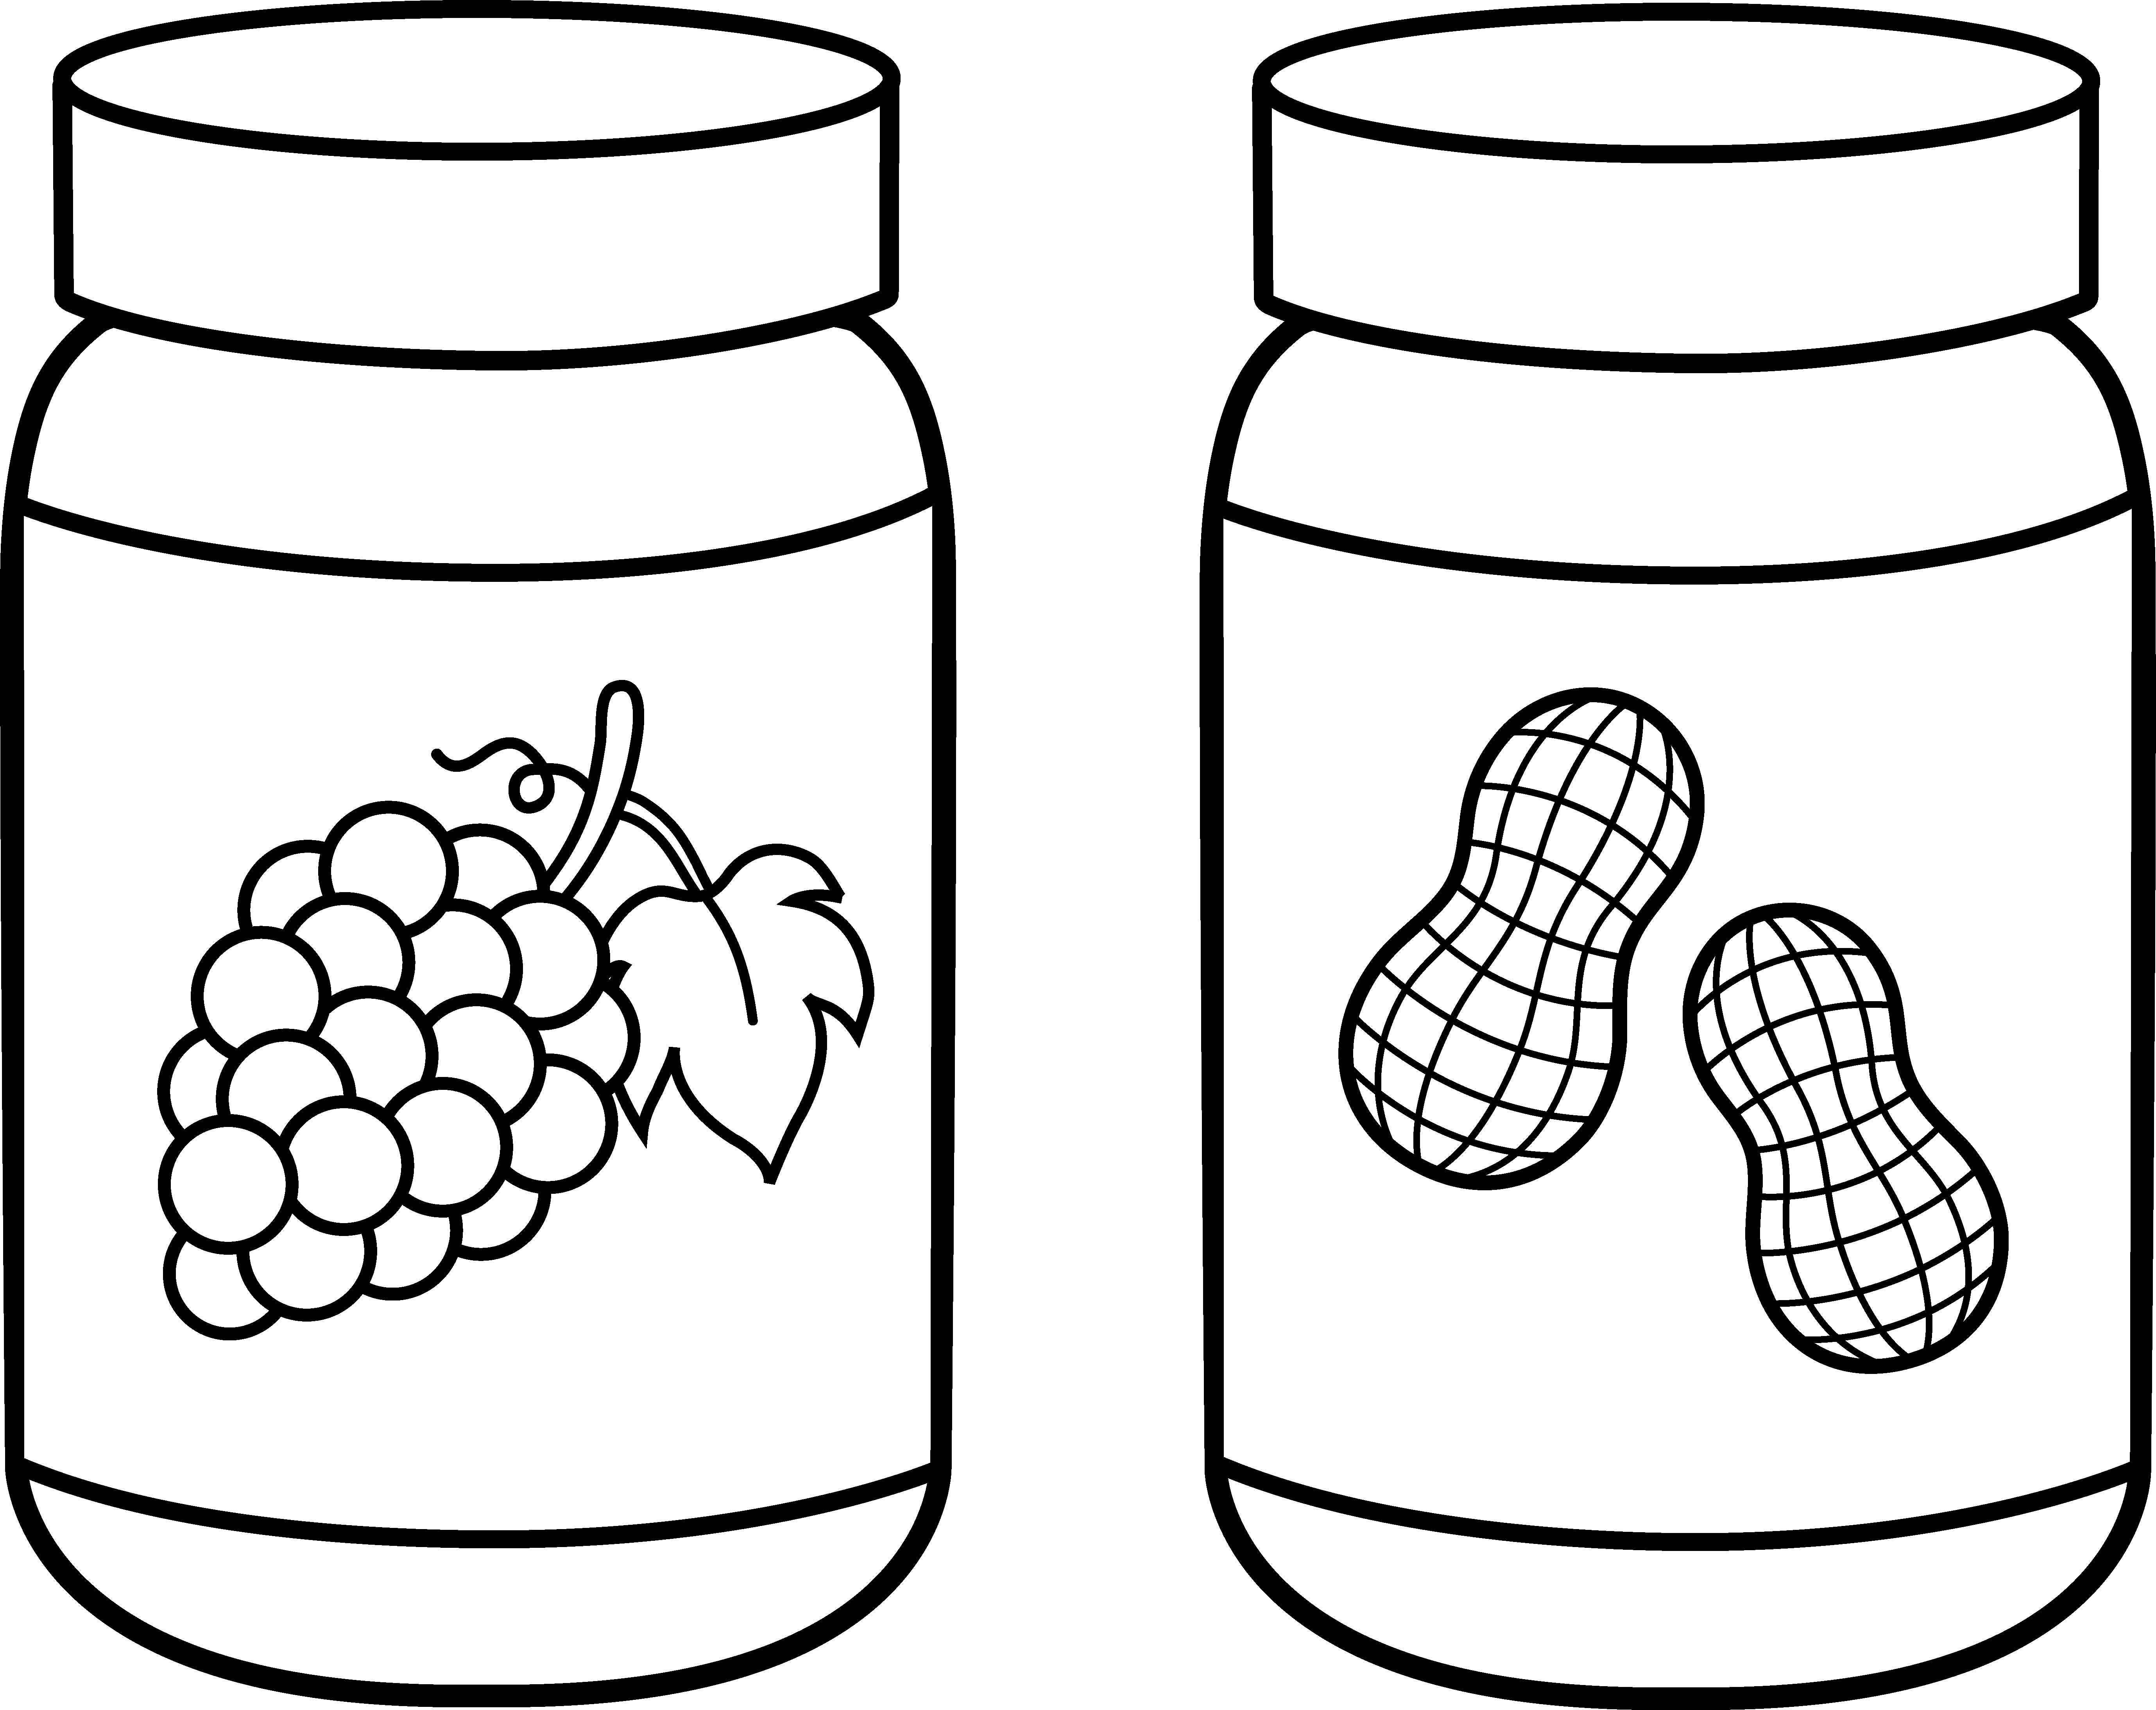 Giant Jam Sandwich Coloring Pages Free Clip Art Coloring Pages Peanut Butter Jelly Time